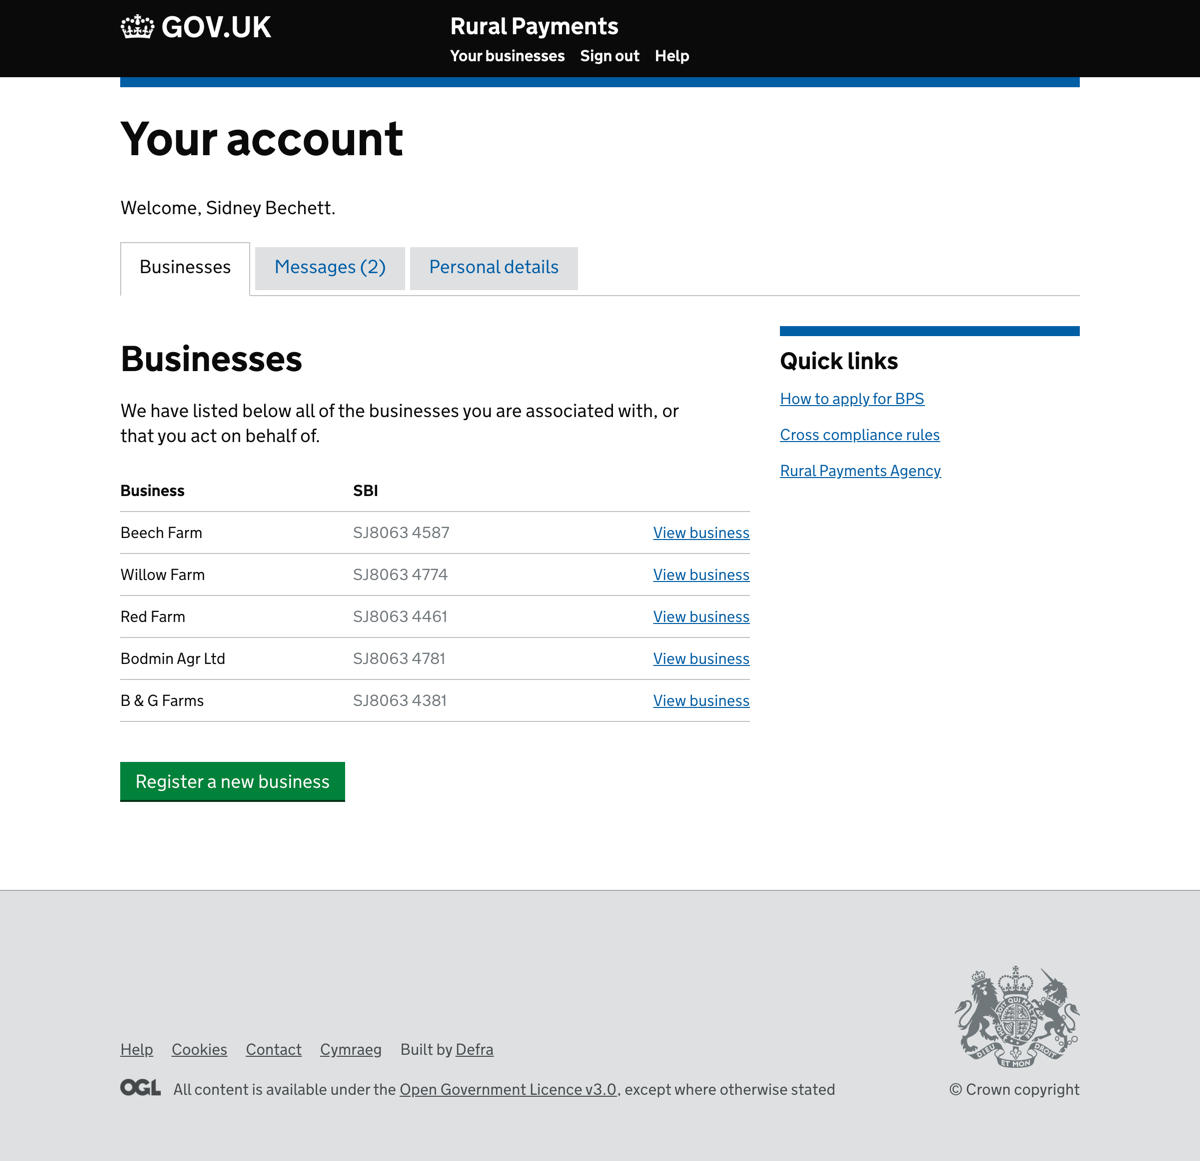 Your account showing businesses, messages and personal details screen